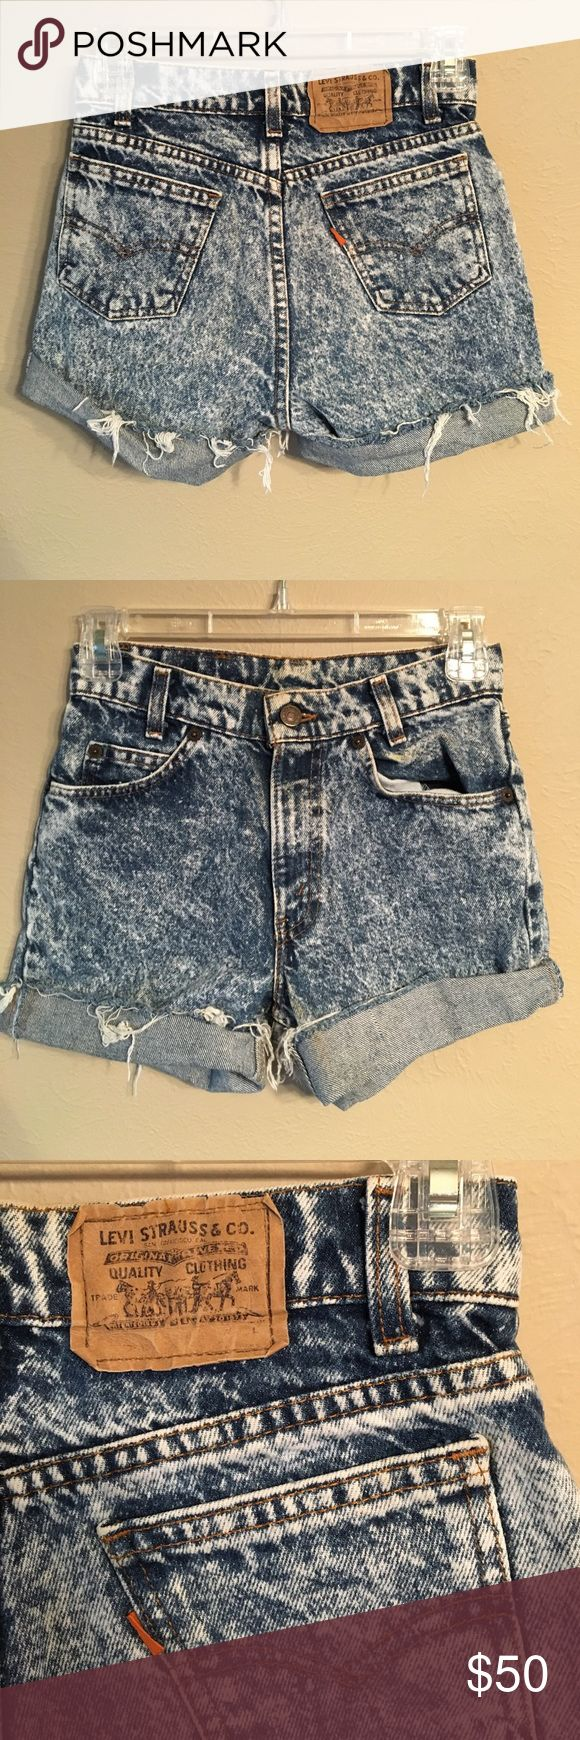 """Vintage Levi's orange tab acid wash shorts Vintage Levi's orange tab acid wash high waisted cut off shorts. Size XS. Would fit size 23. Waist 12"""" across, hips 16"""", rise 9.75"""". Little yellow spot on pocket but it's not too noticeable. Levi's Shorts Jean Shorts"""